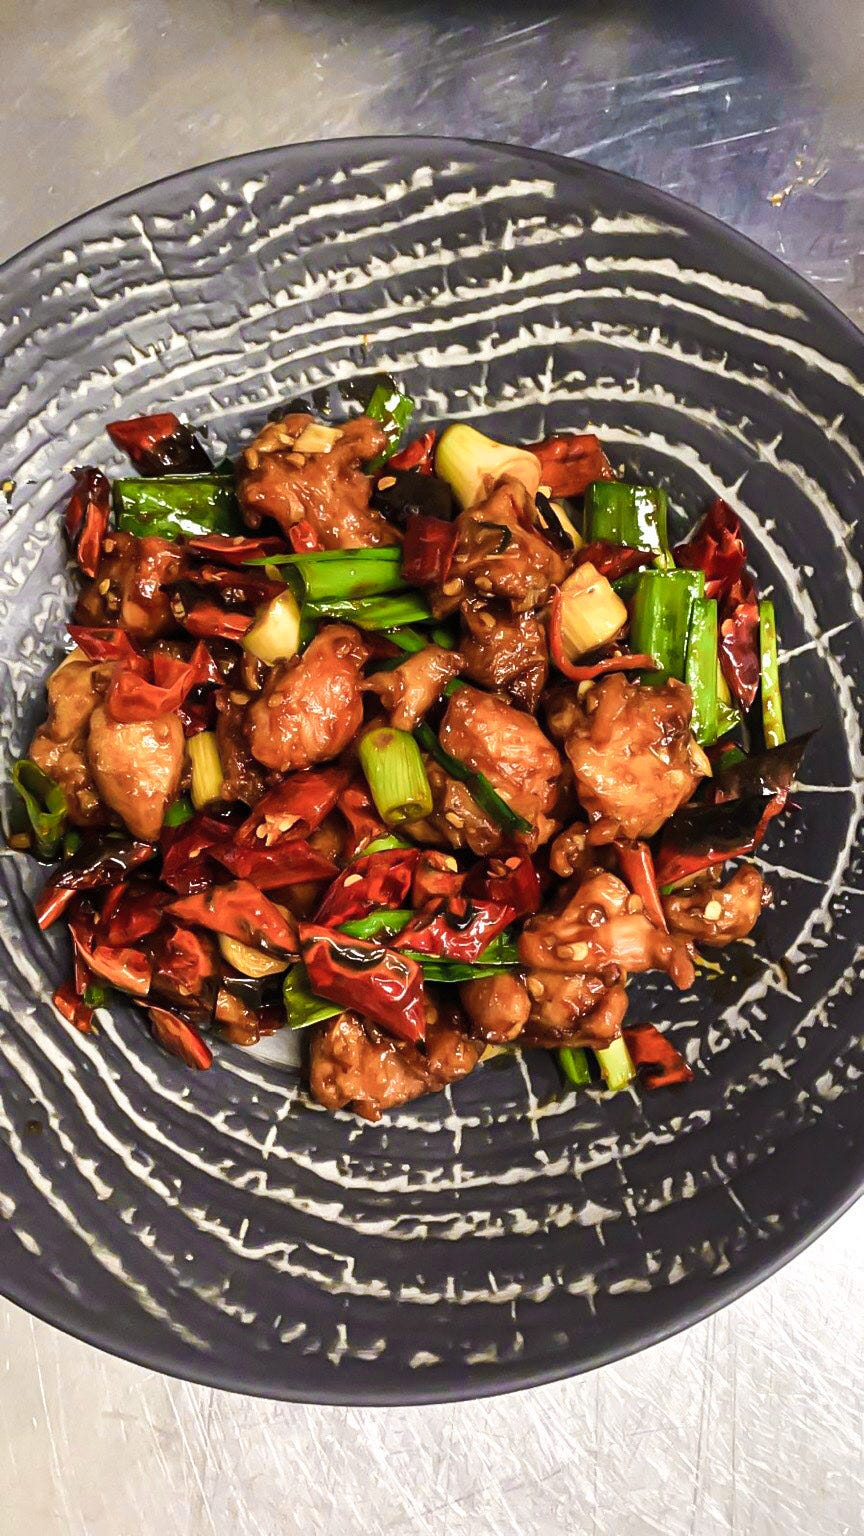 An overhead shot of a dark textured plate in the middle of which is a pile of bite-sized pieces of cooked chicken, spring onions and red chillies.